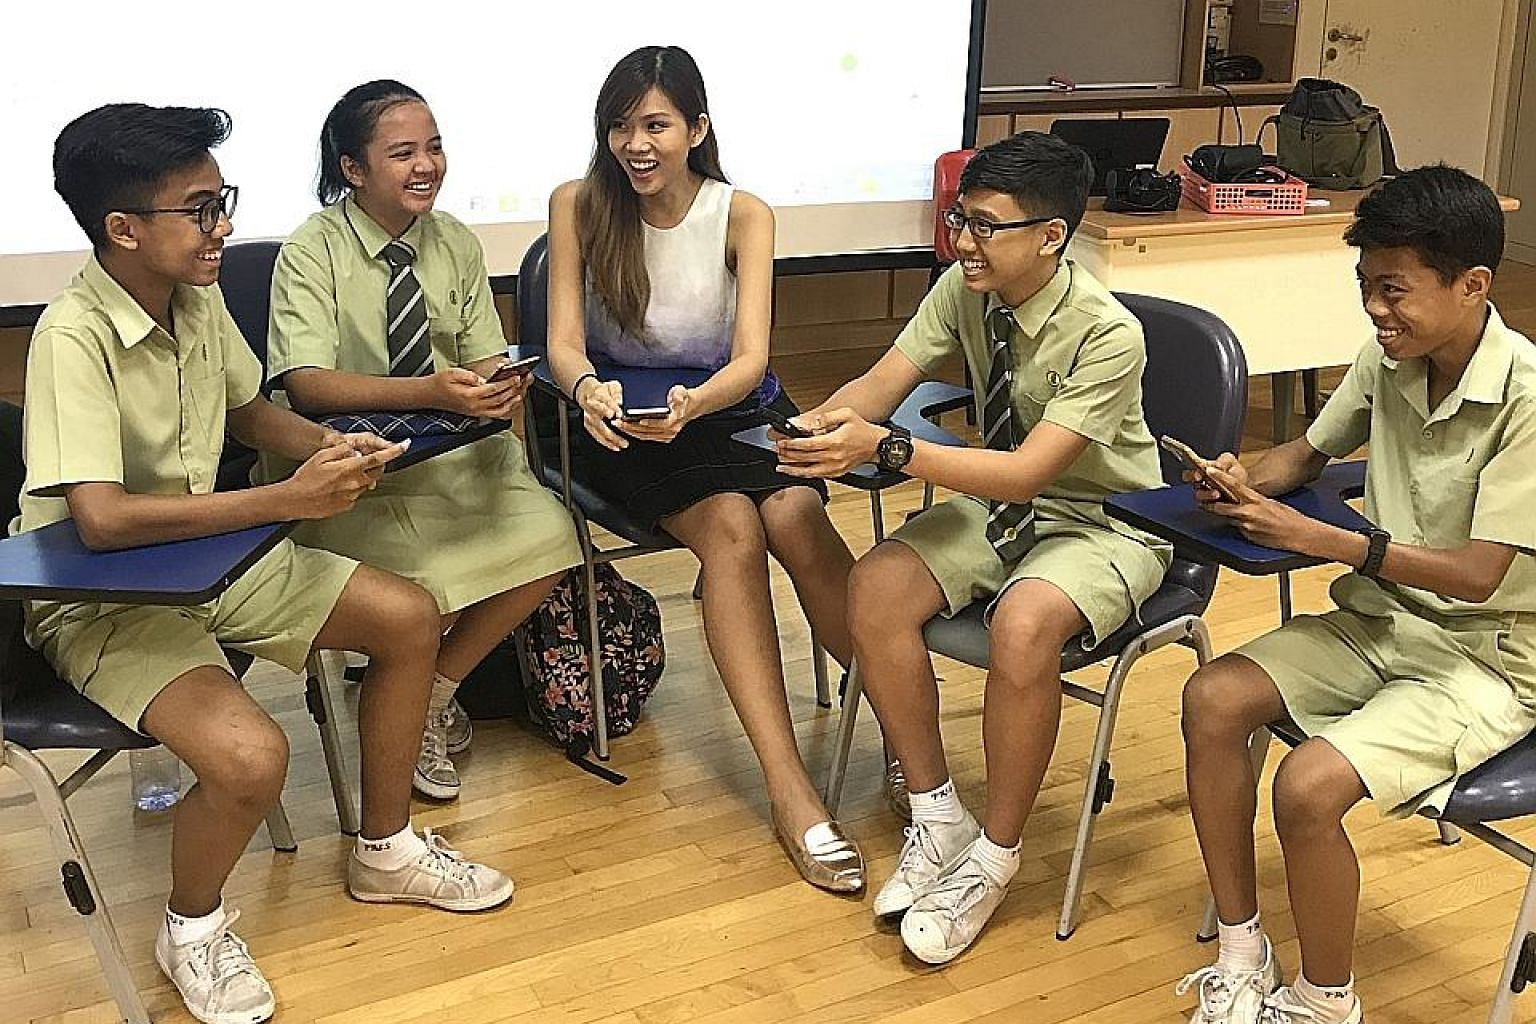 Miss Mavis Ho facilitating a group discussion with her students, using the NewsEd app.